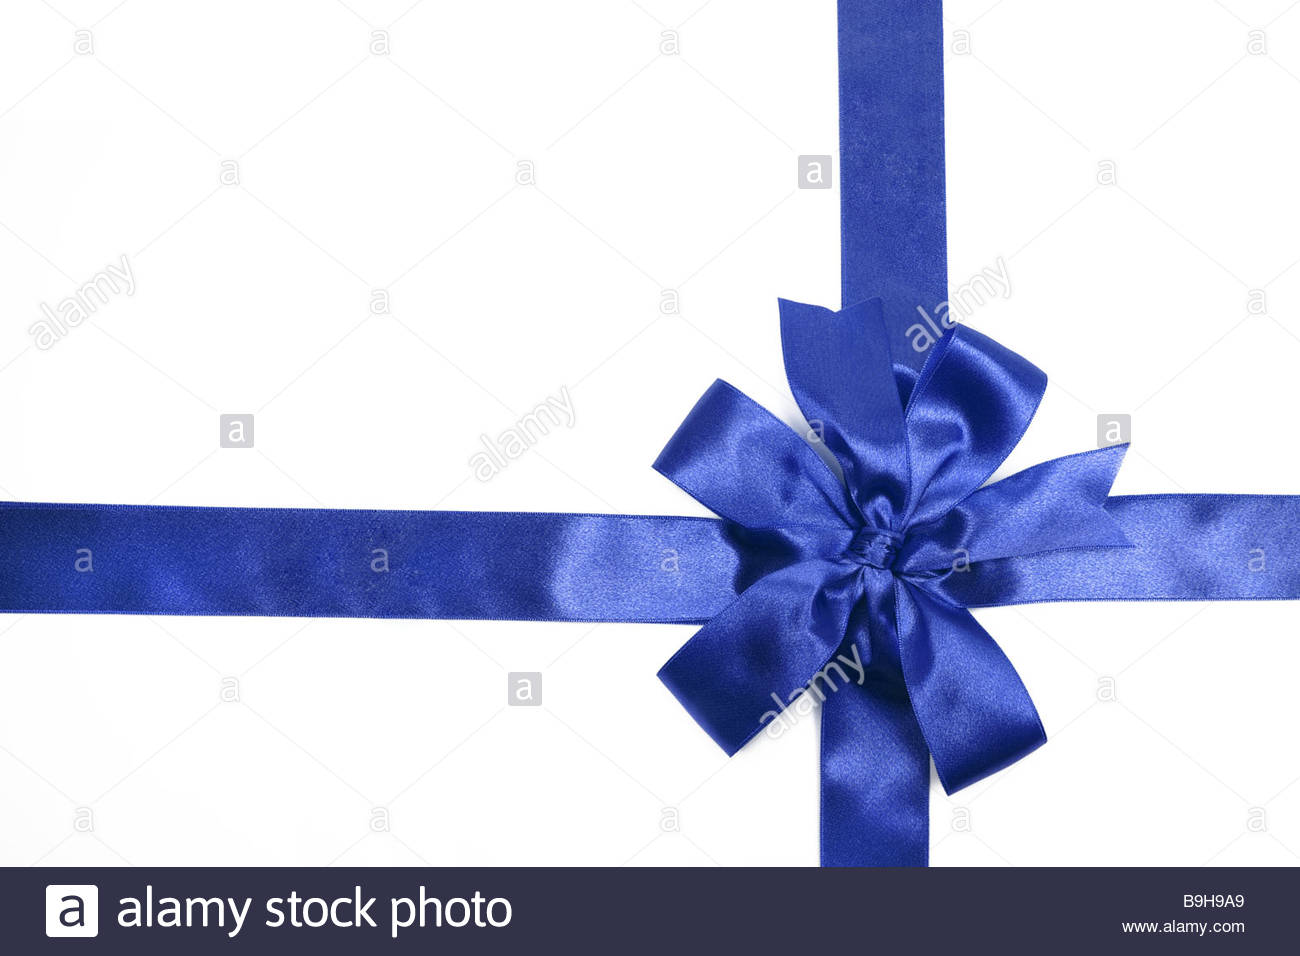 Gift packs knows bow blue christmas gift present surprise packet gift packs knows bow blue christmas gift present surprise packet christmas gift giving birthday birthday gift holiday ceremony negle Choice Image